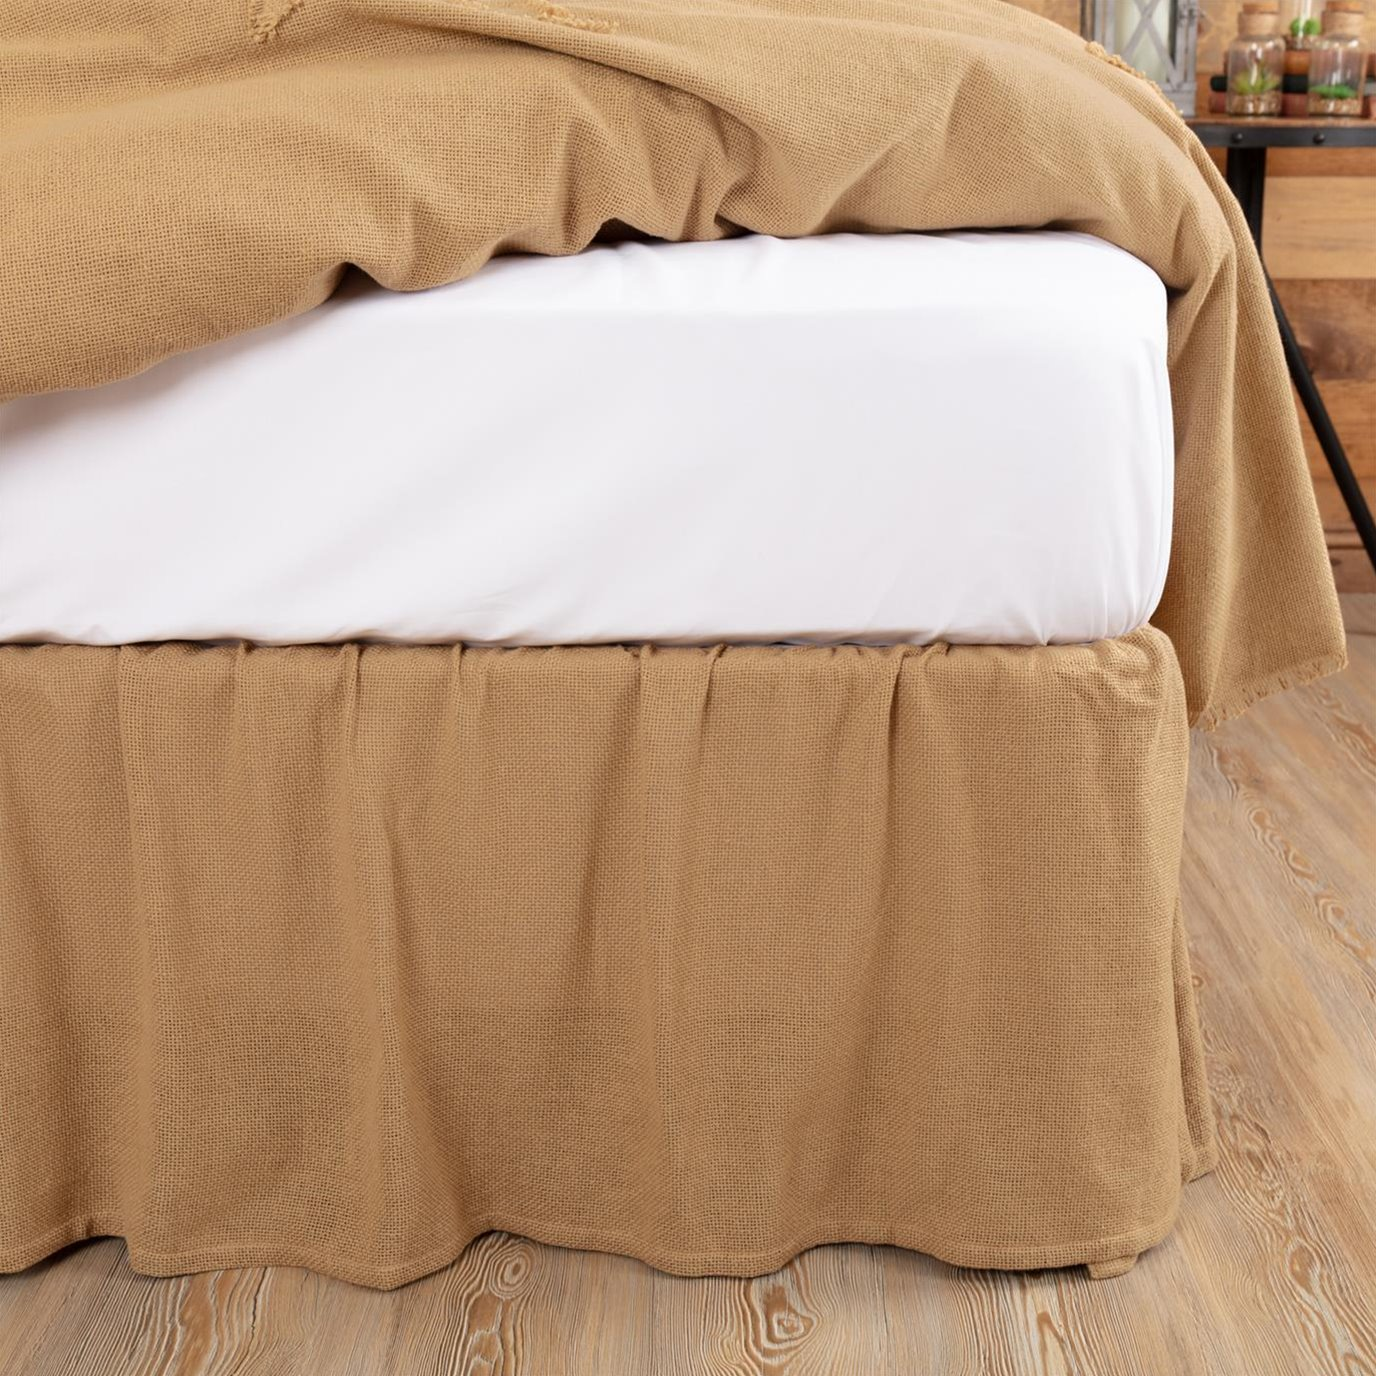 Burlap Natural Ruffled Queen Bed Skirt